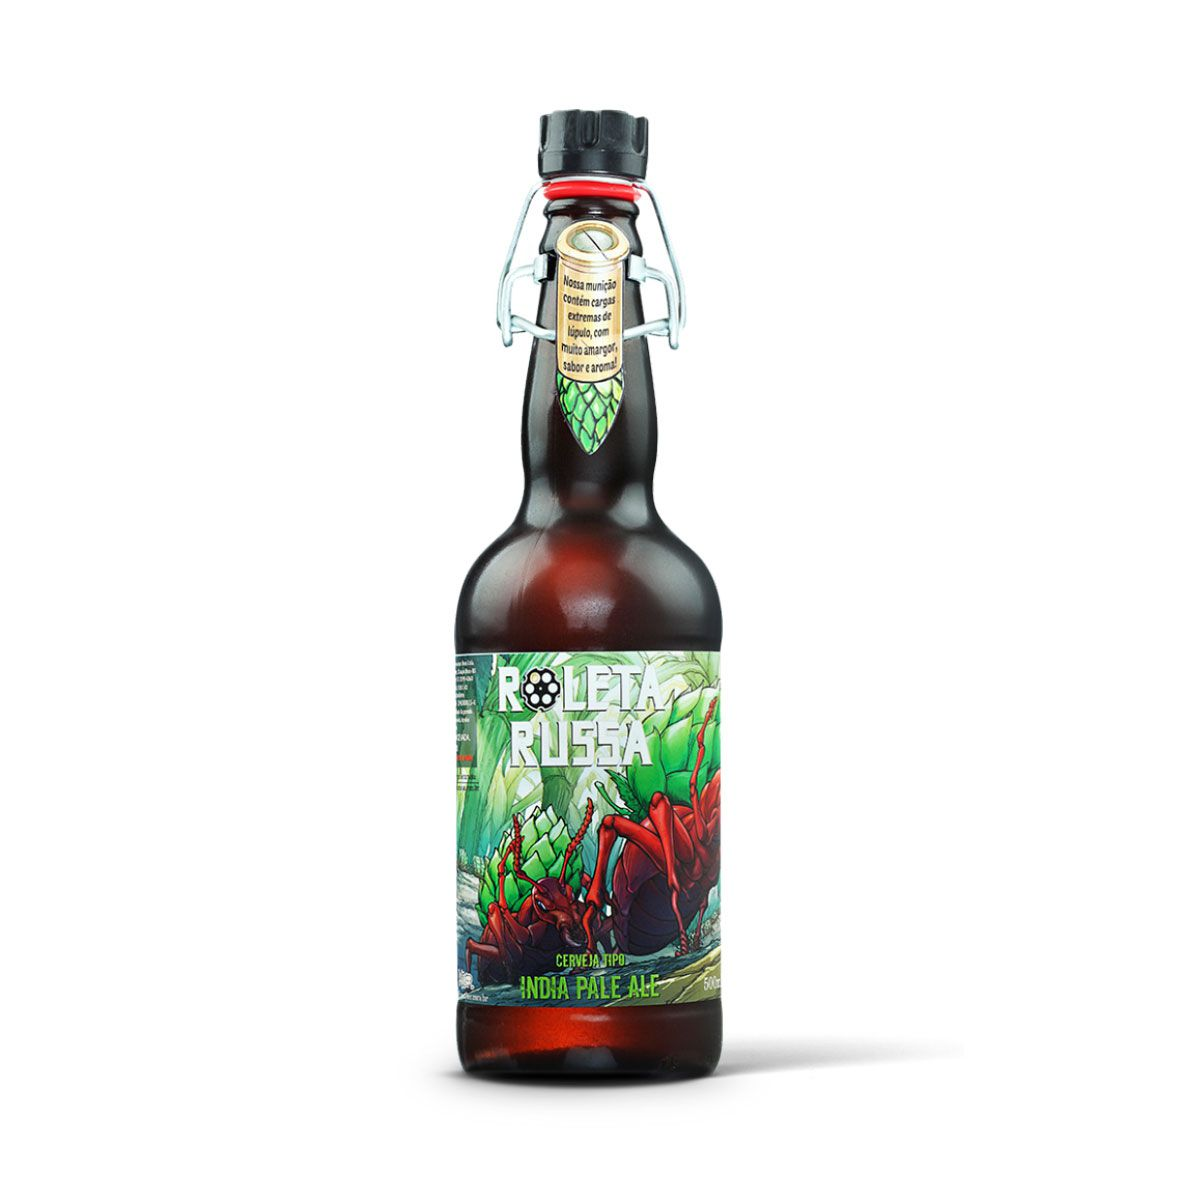 Roleta Russa India Pale Ale IPA 500ml